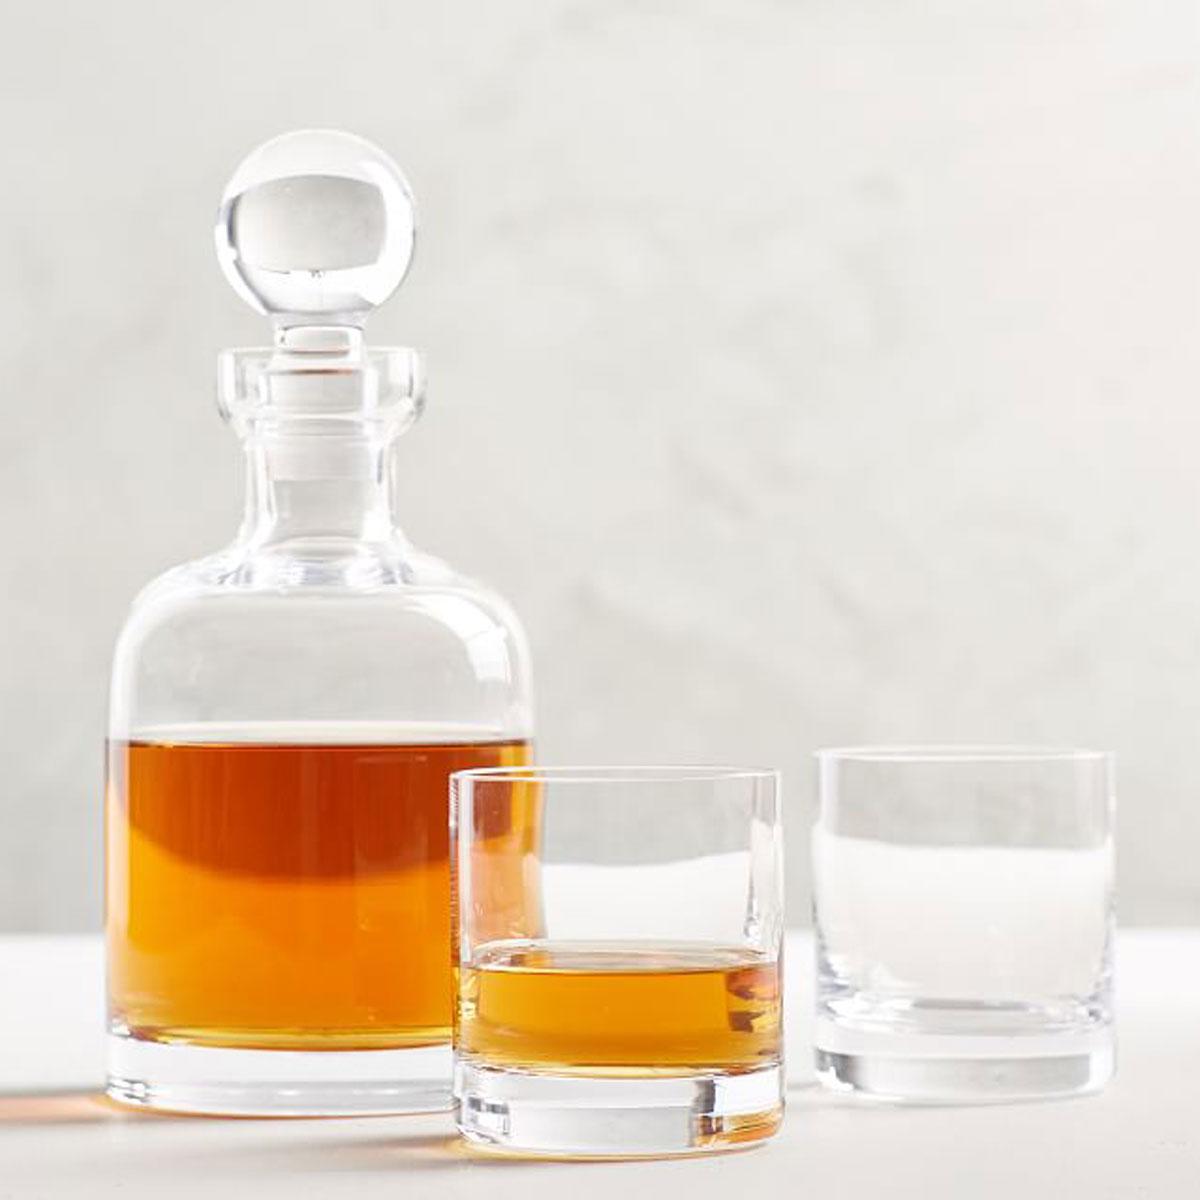 after hours old fashioned glass